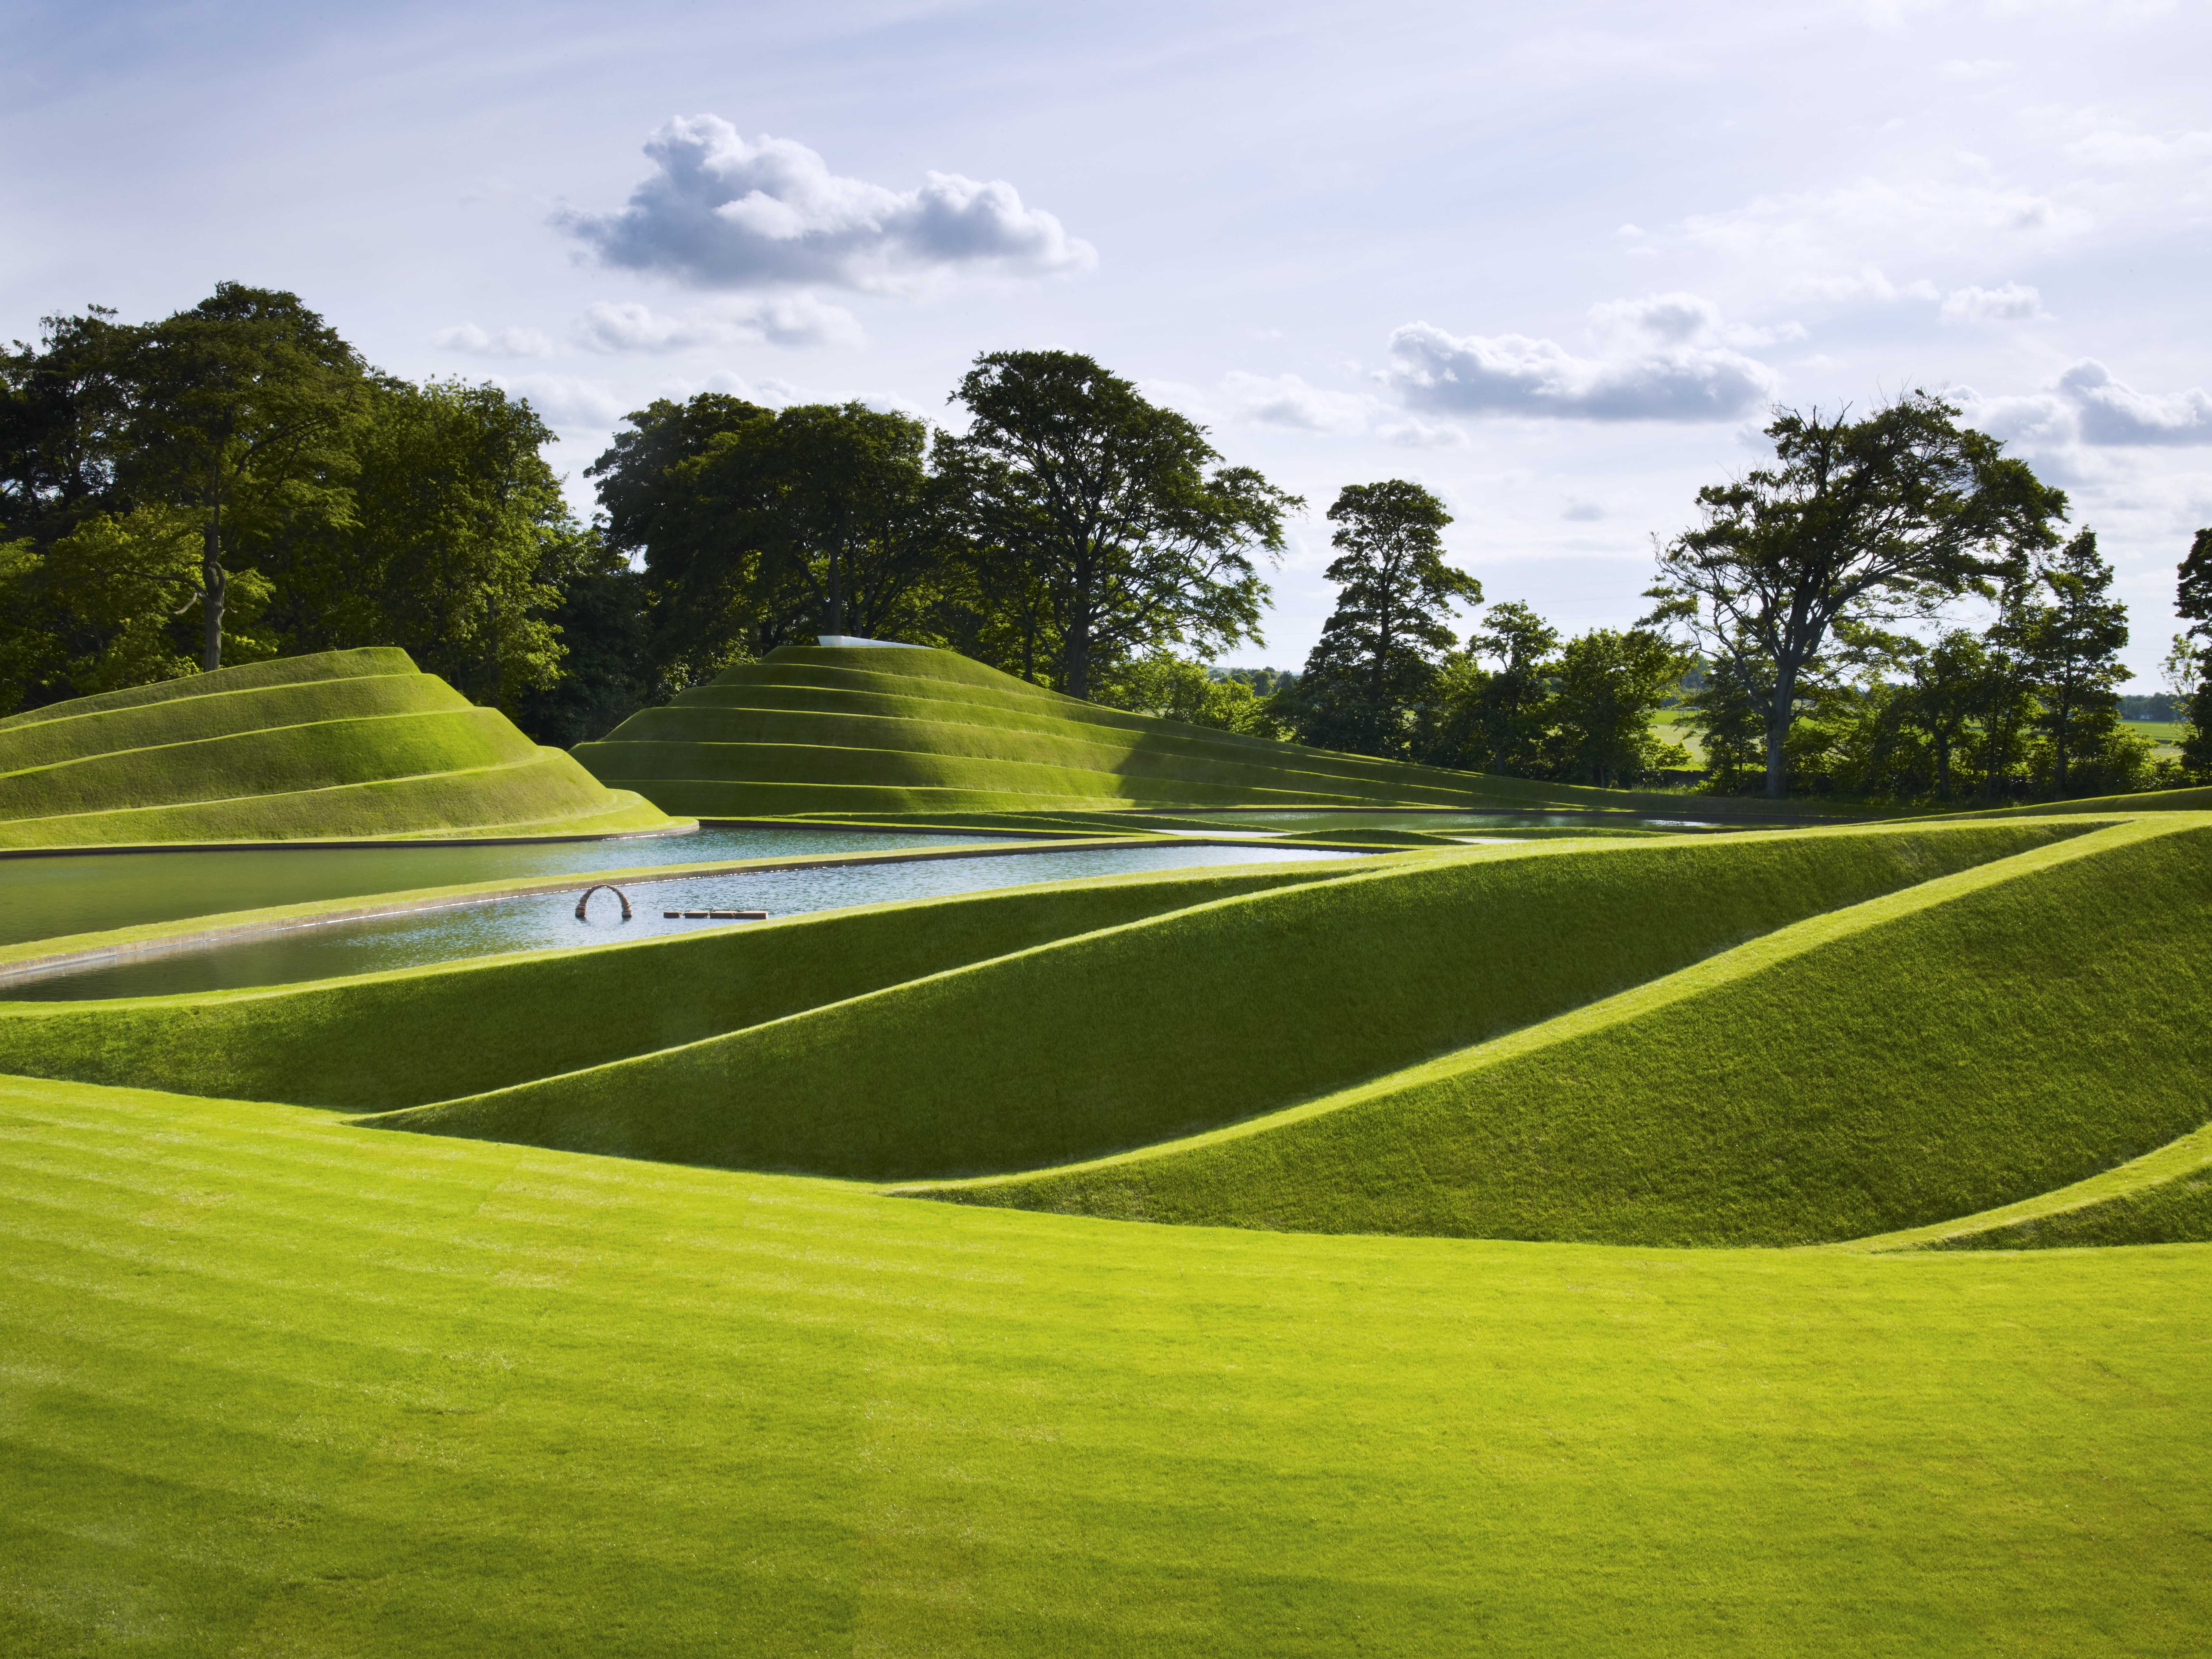 Jupiter Artland/Wikimedia CC BY-SA 4.0 https://creativecommons.org/licenses/by-sa/4.0/deed.en